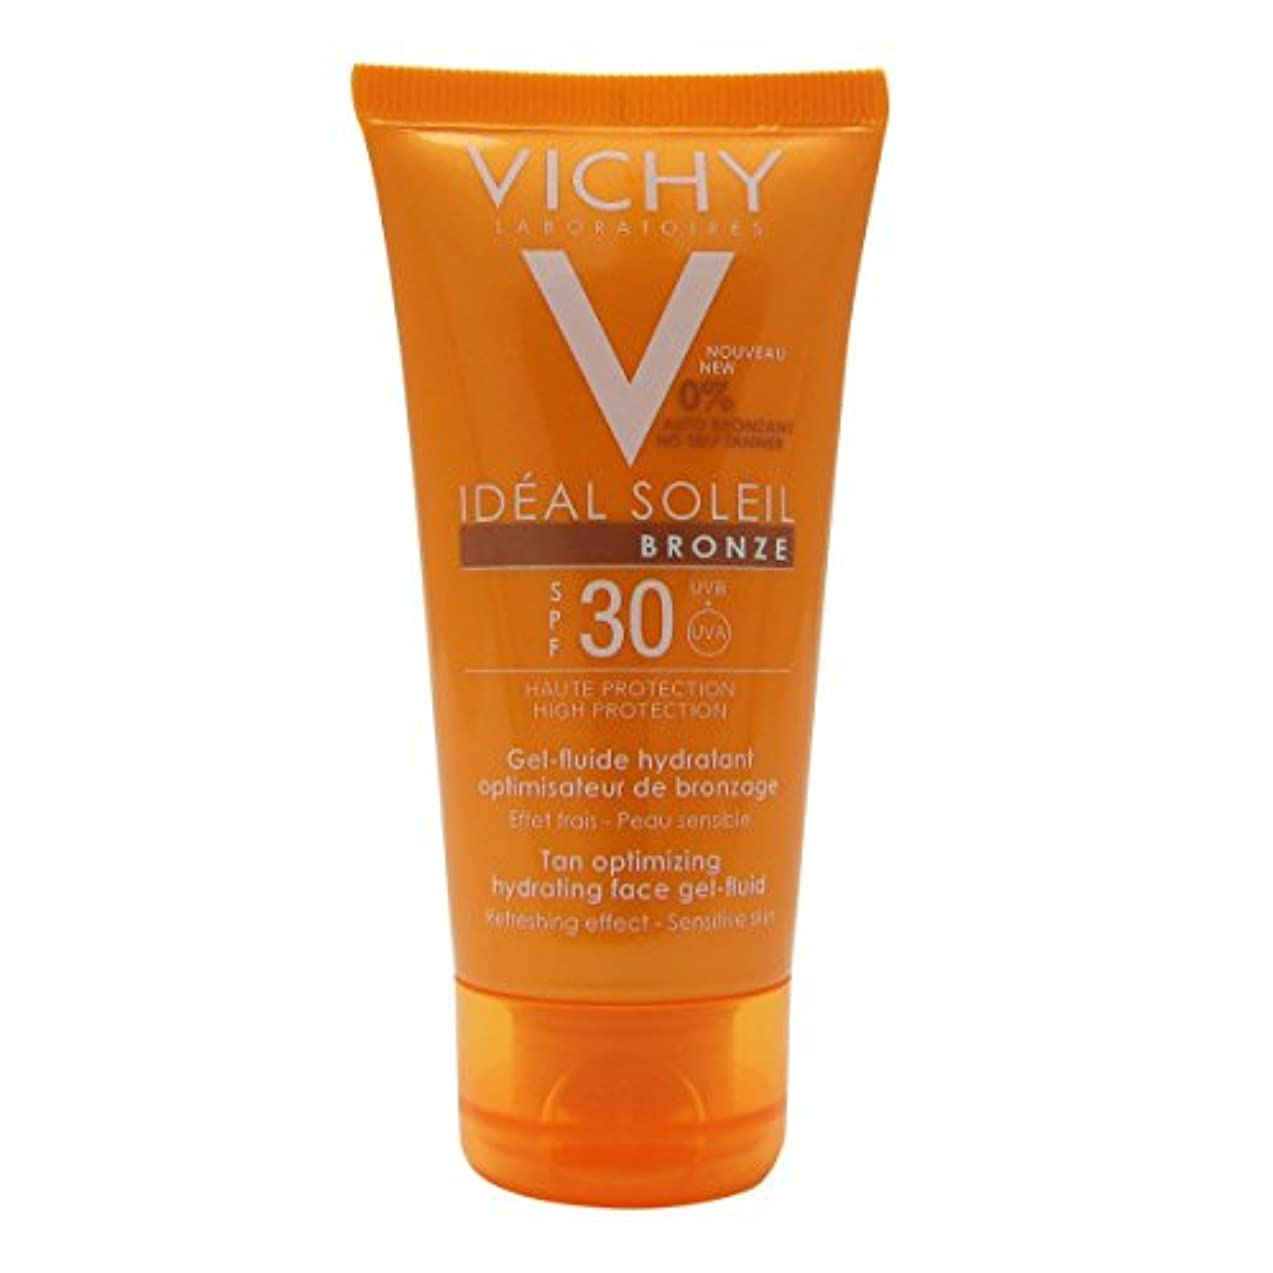 境界仮定クライアントVichy Capital Soleil Ideal Soleil Tan Optimizing Hydrating Face Gel-fluid Spf30 50ml [並行輸入品]